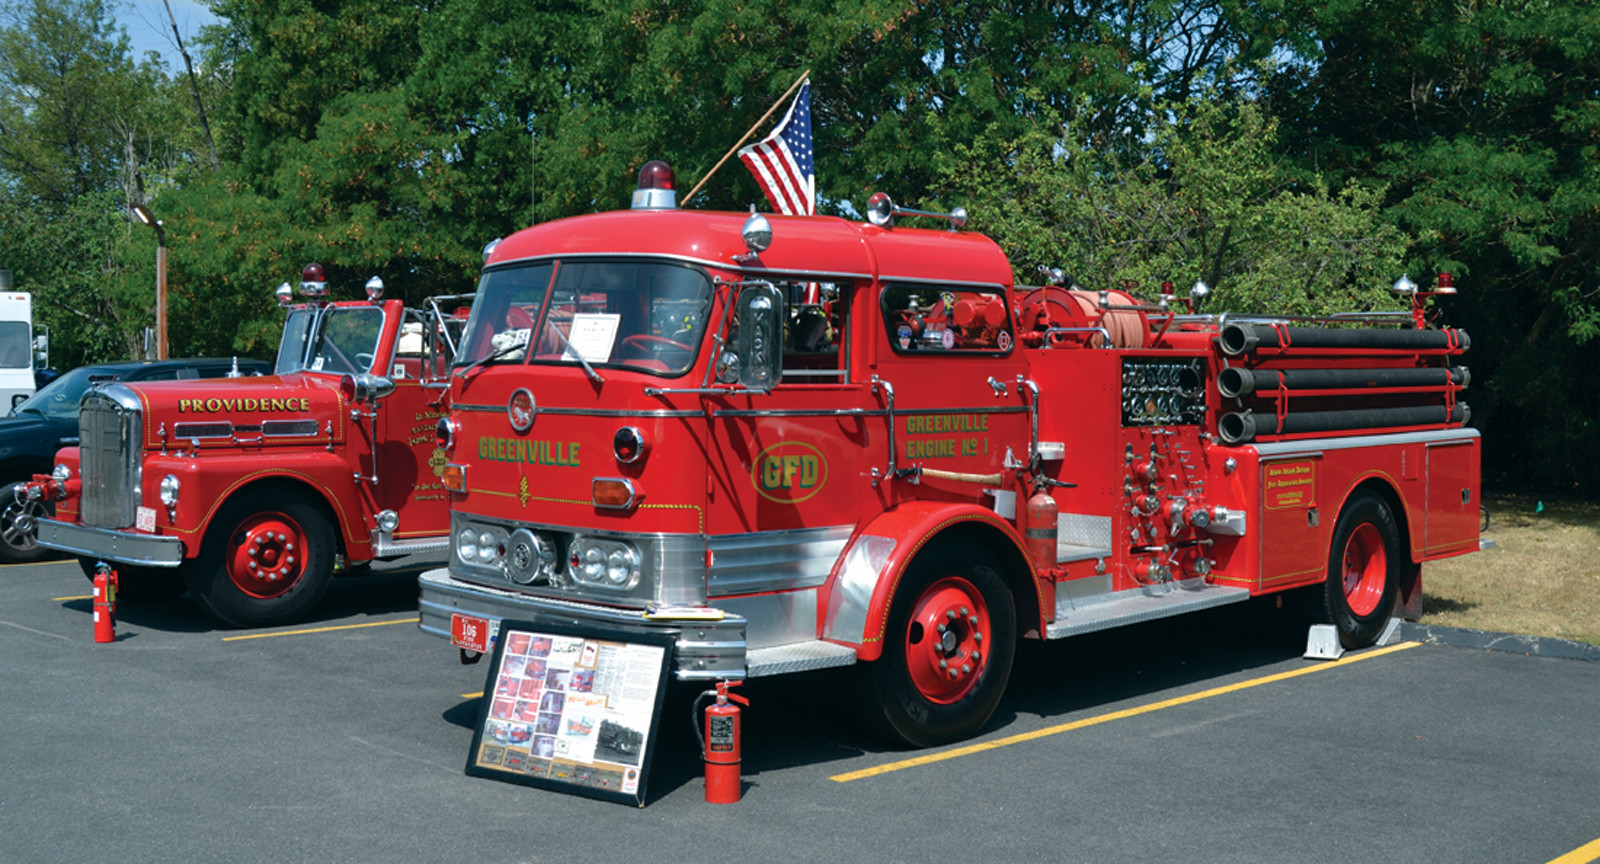 VINTAGE VEHICLES: Greenville and Providence firefighters used to report to duty with these engines.